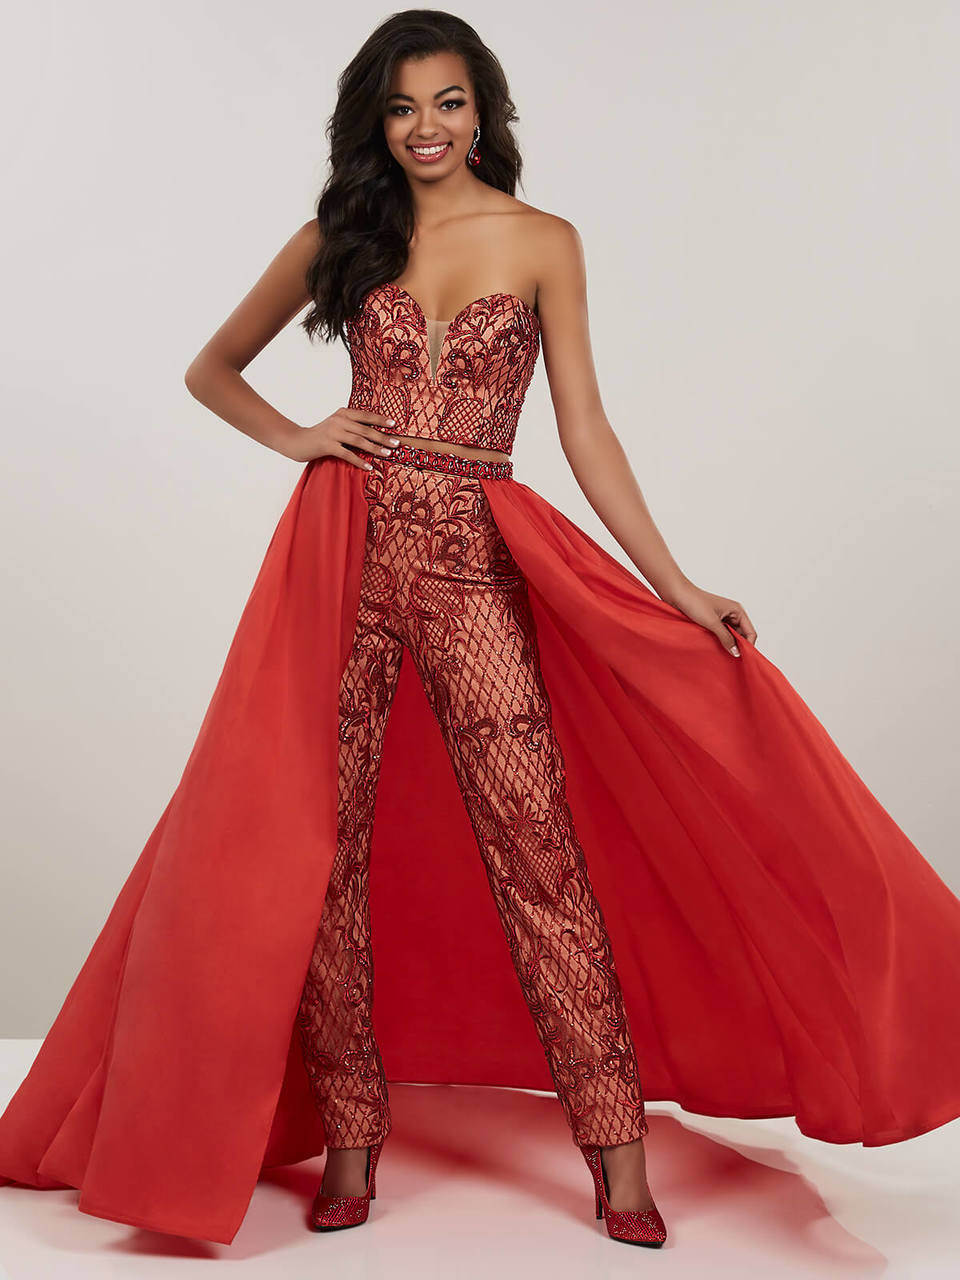 402b82d5403 Sequin Pantsuit Panoply 14952 Prom Dress PromHeadquarters. Two Piece Jumpsuit  Prom Dress Panoply ...